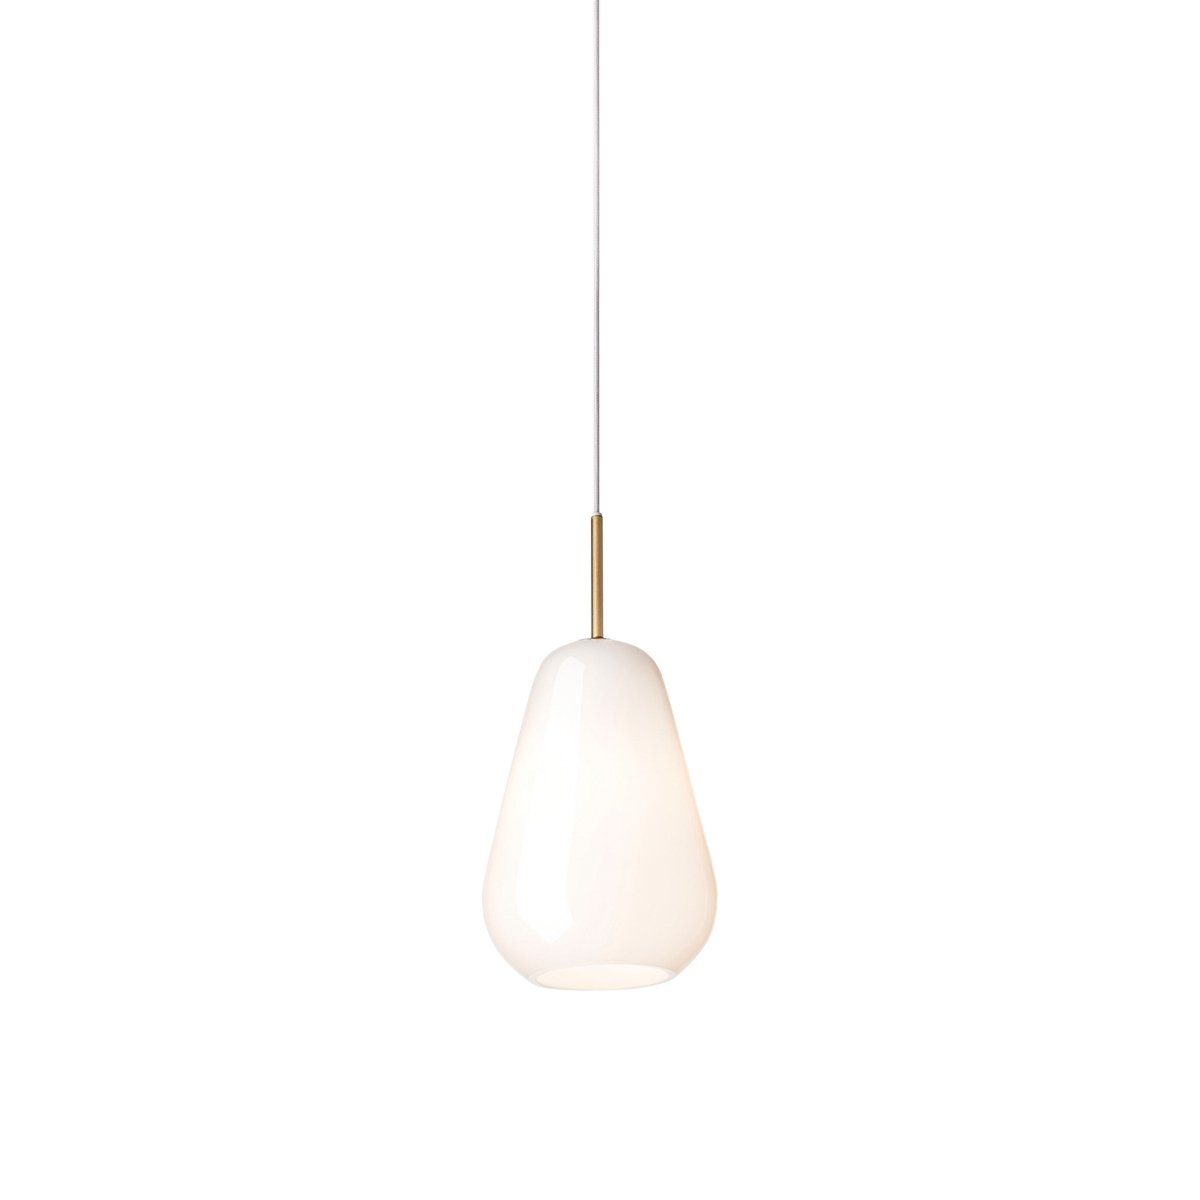 Nuura Anoli 1 Hanglamp Small G9 - Nordic Gold - Opal White